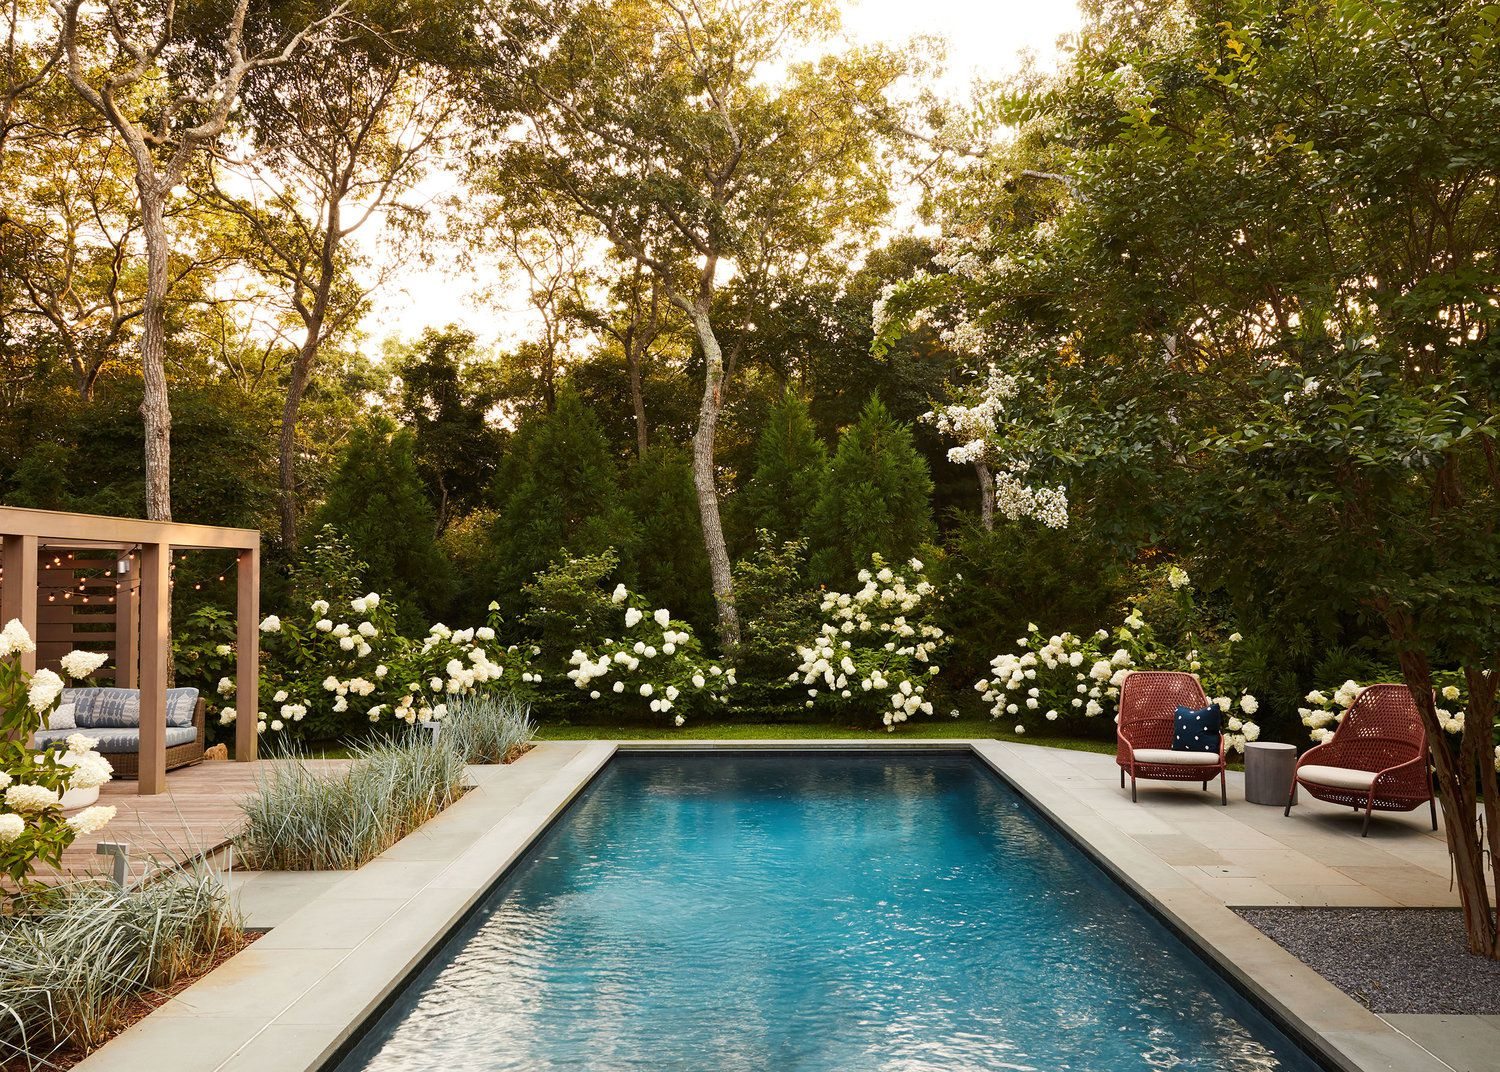 37 Breathtaking Backyard Ideas - Outdoor Space Design Inspiration